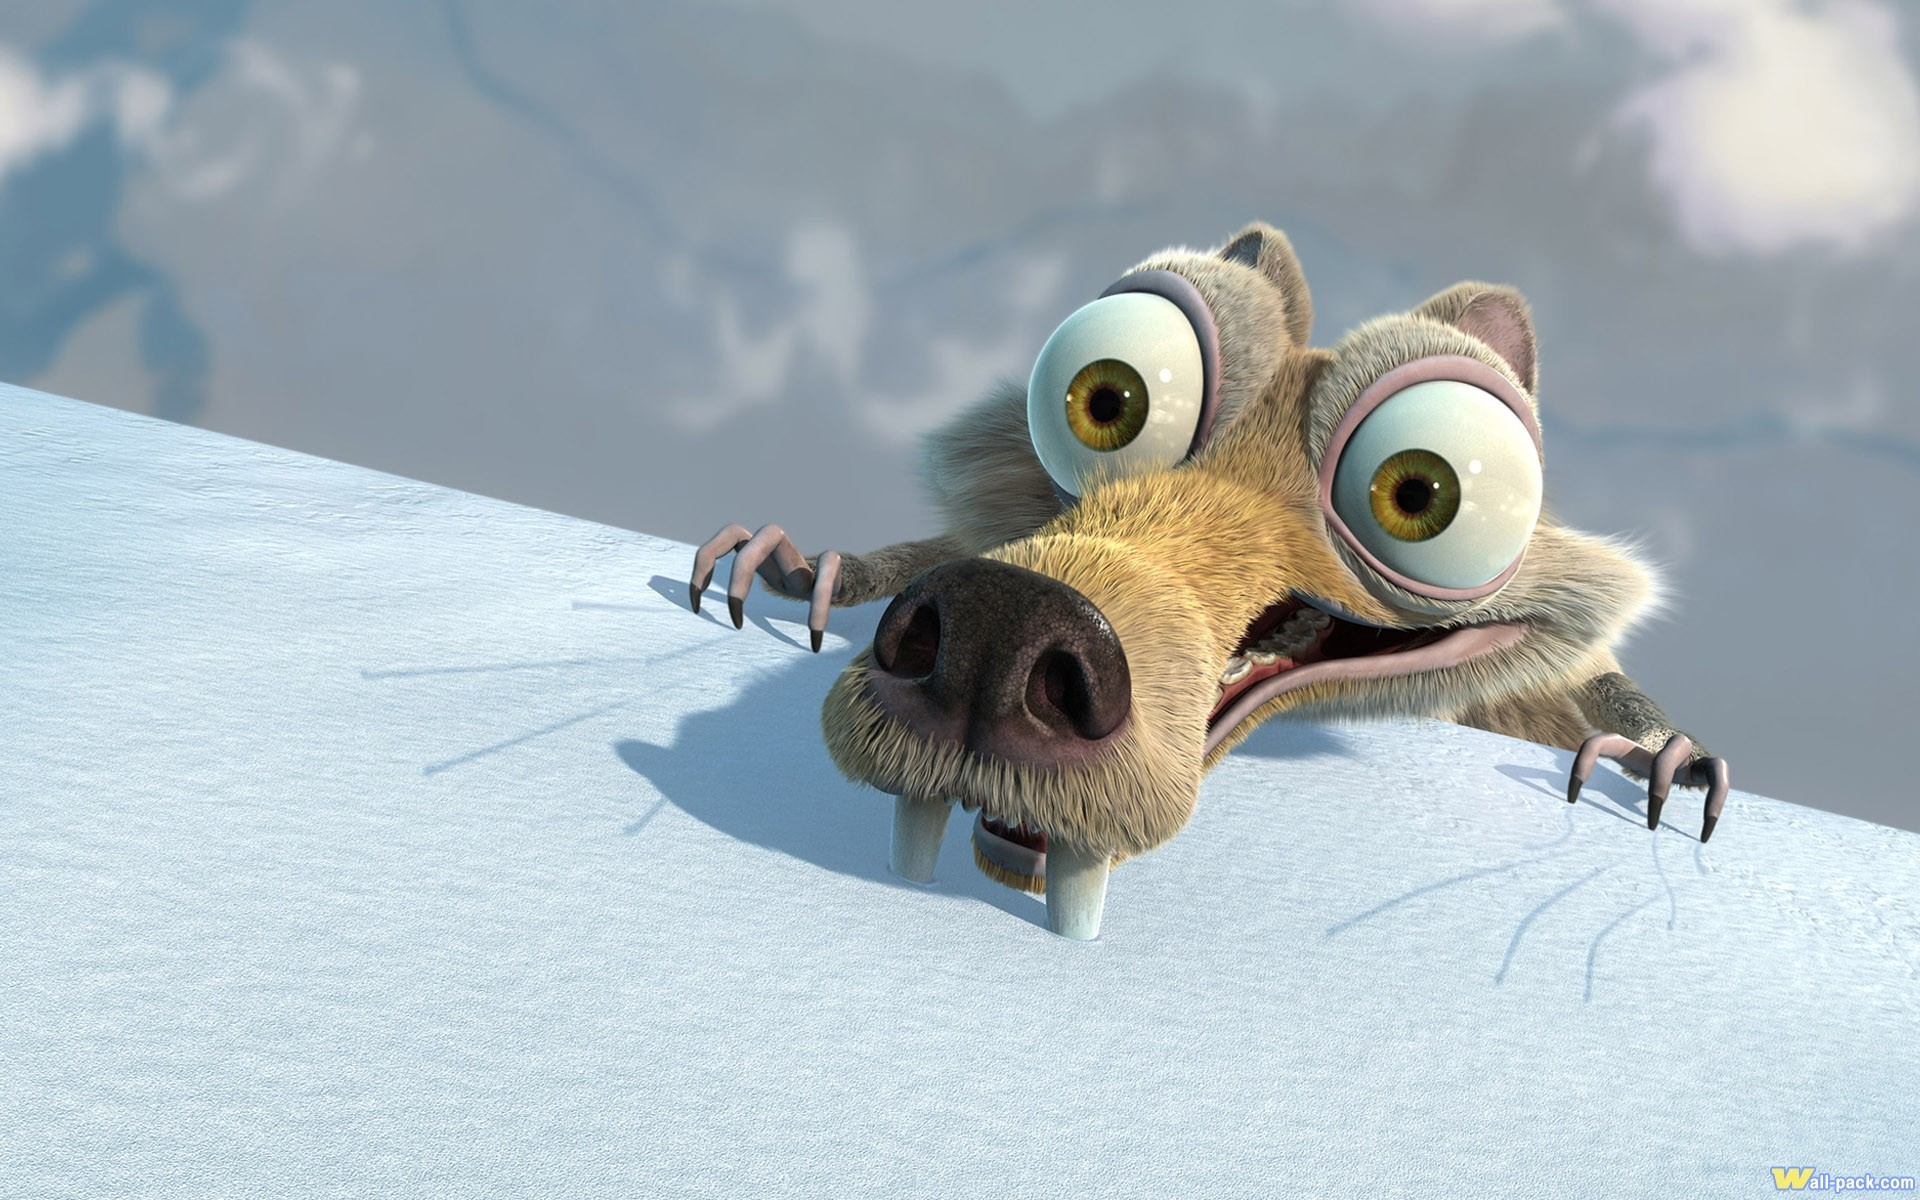 1920x1200 3d cartoon ice age funny wallpaper desktop wallpapers high definition  amazing colourful background photos best display picture 1920×1200 Wallpaper  HD